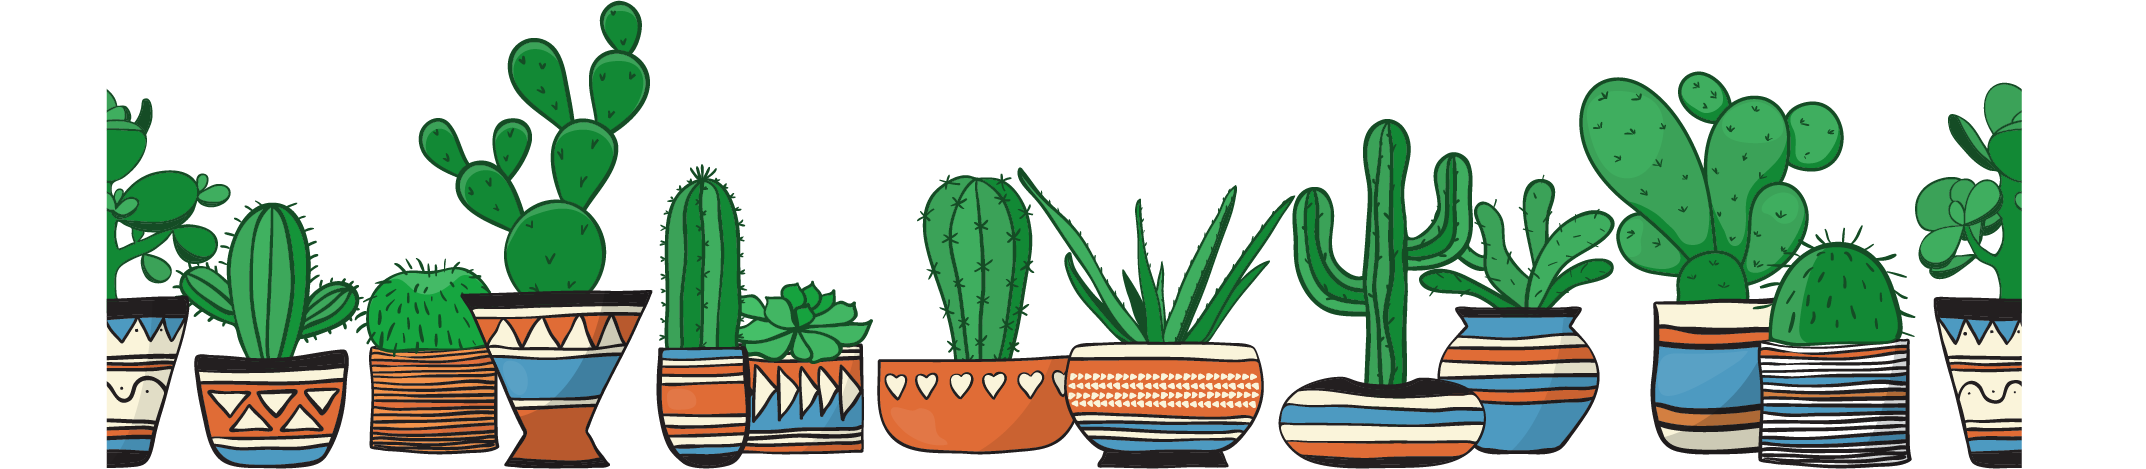 cactus collection.png